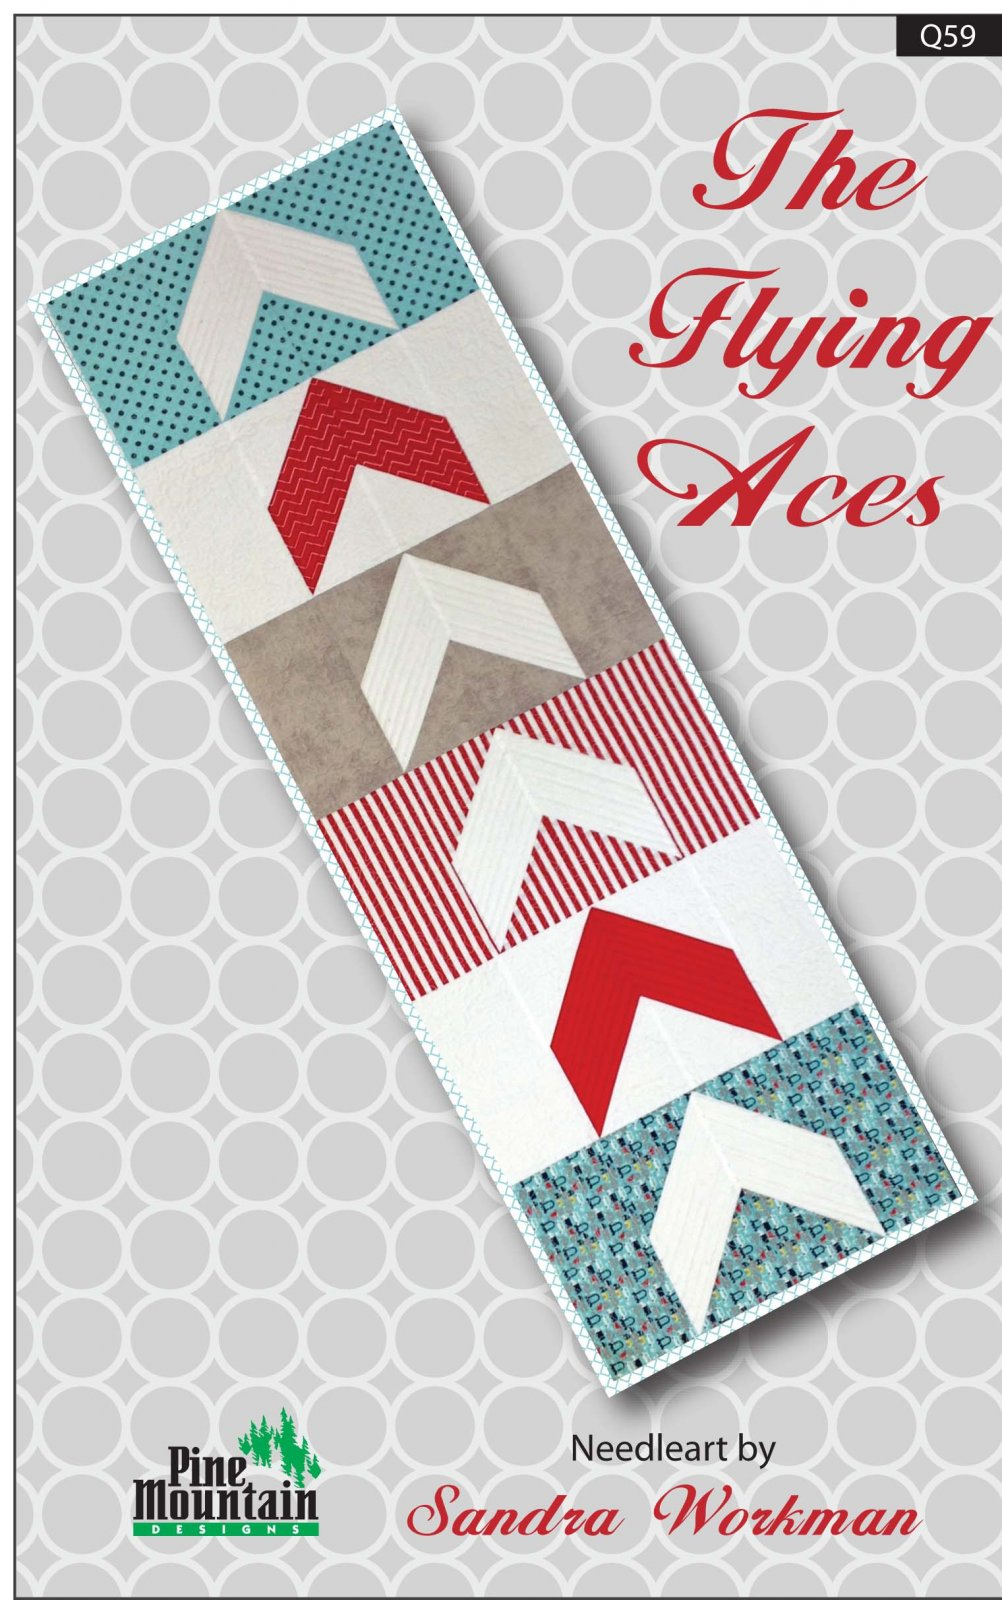 Q59 Flying Aces